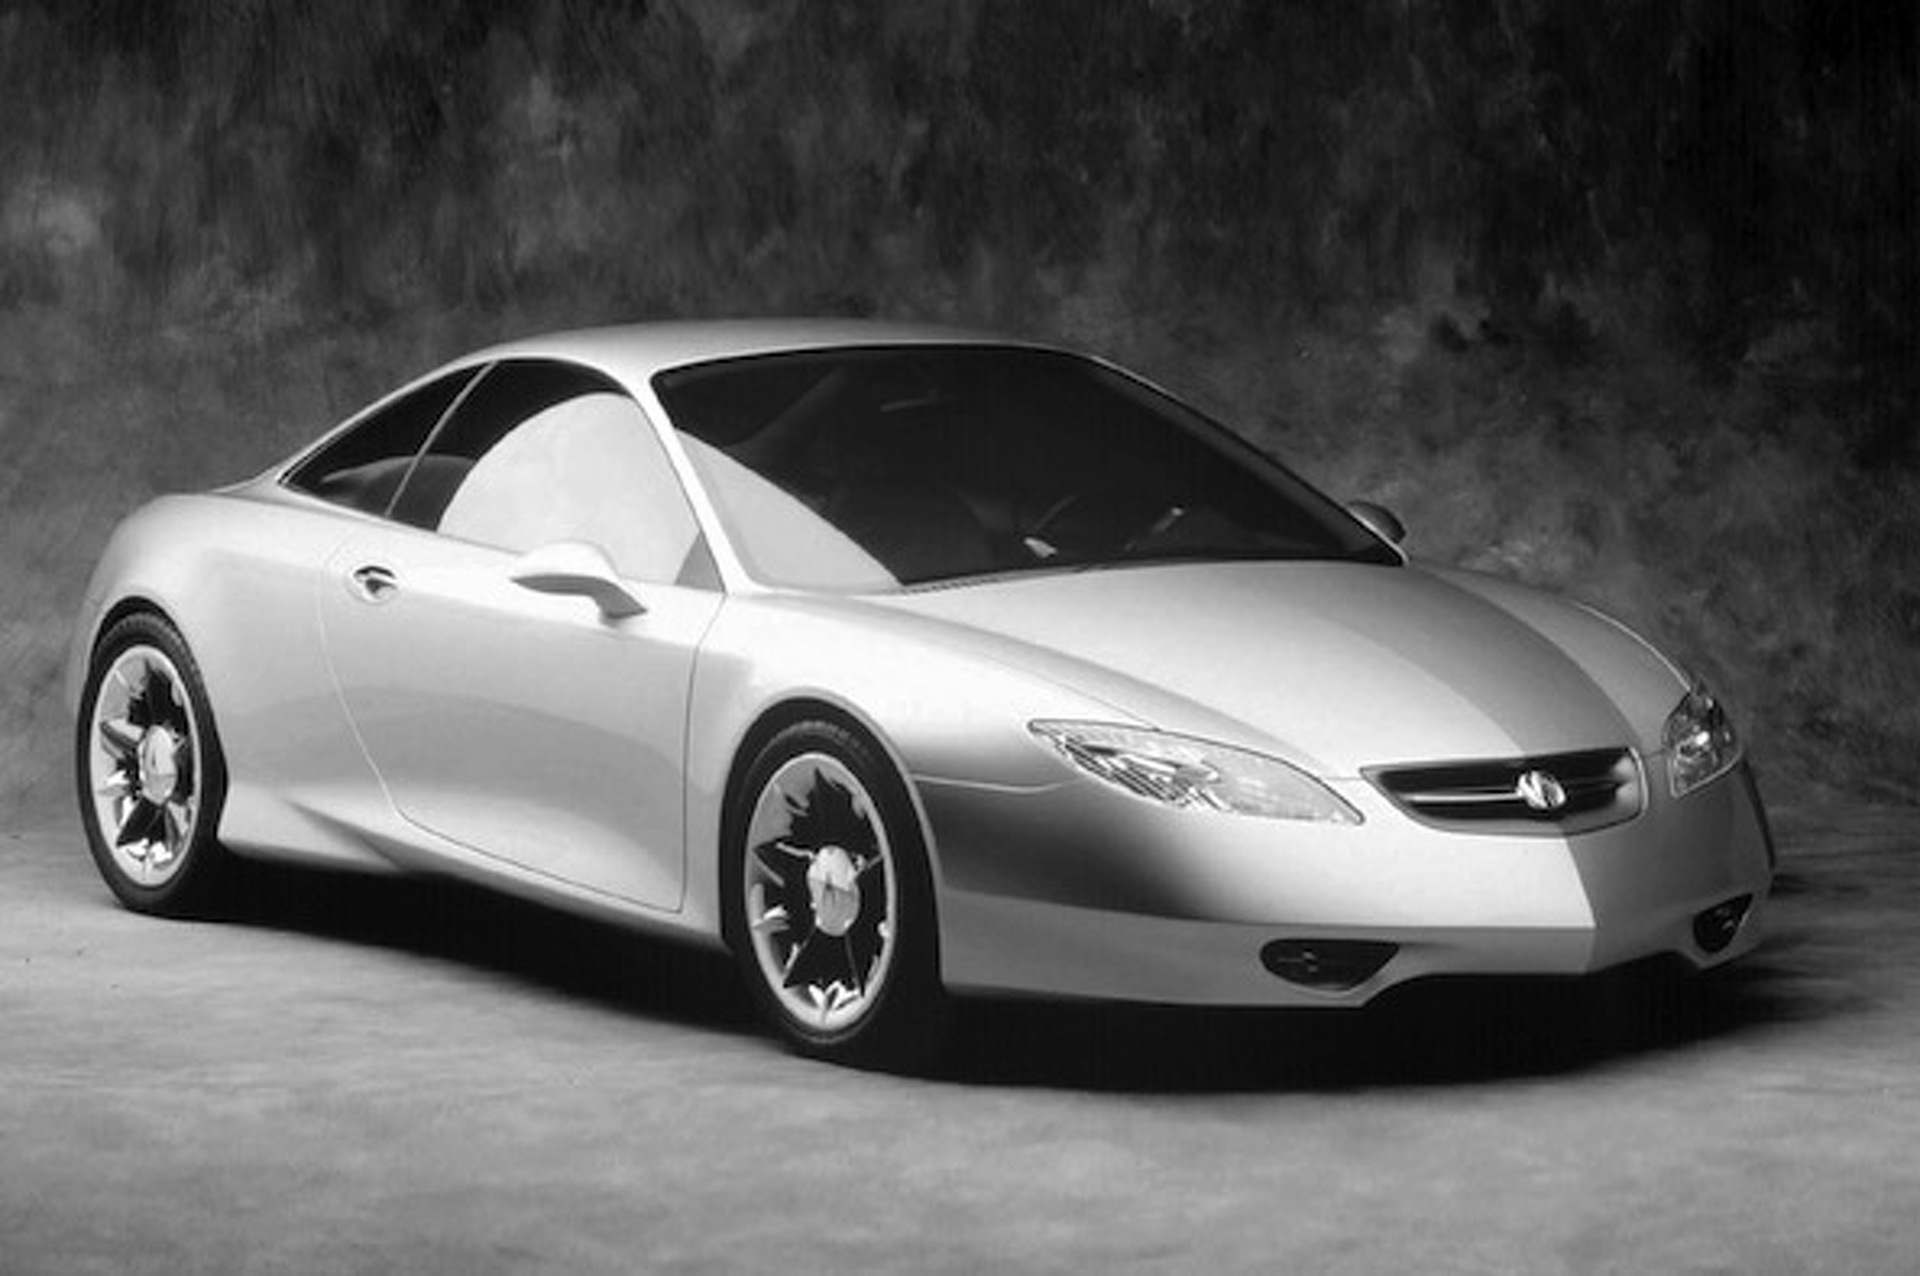 Acura CL-X Concept: The Sporty Coupe That Never Was